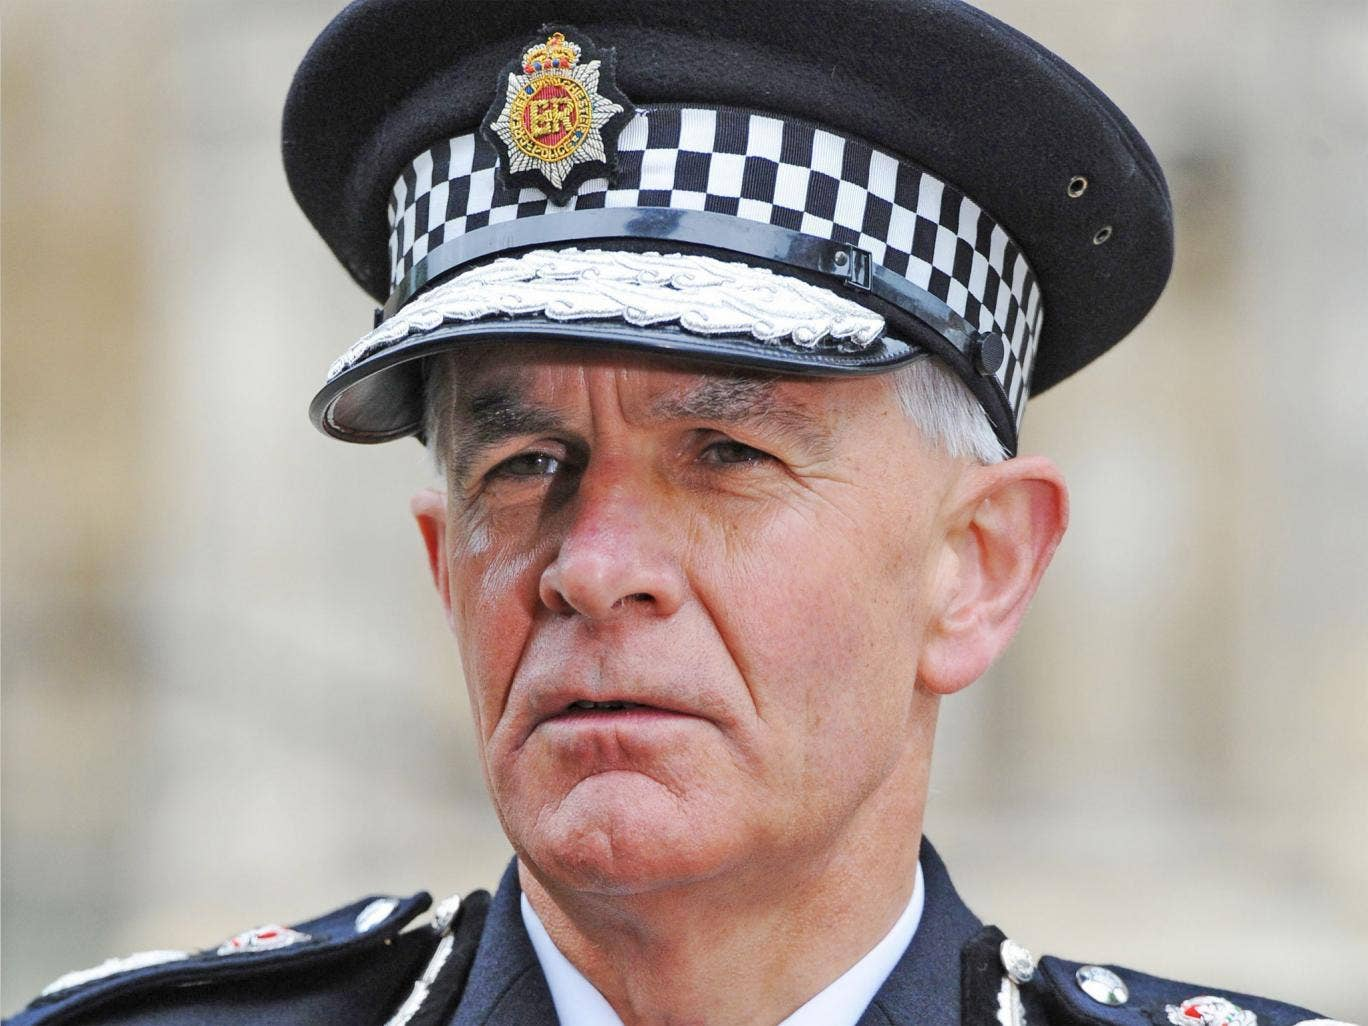 The Greater Manchester Police Chief Constable is facing calls to resign